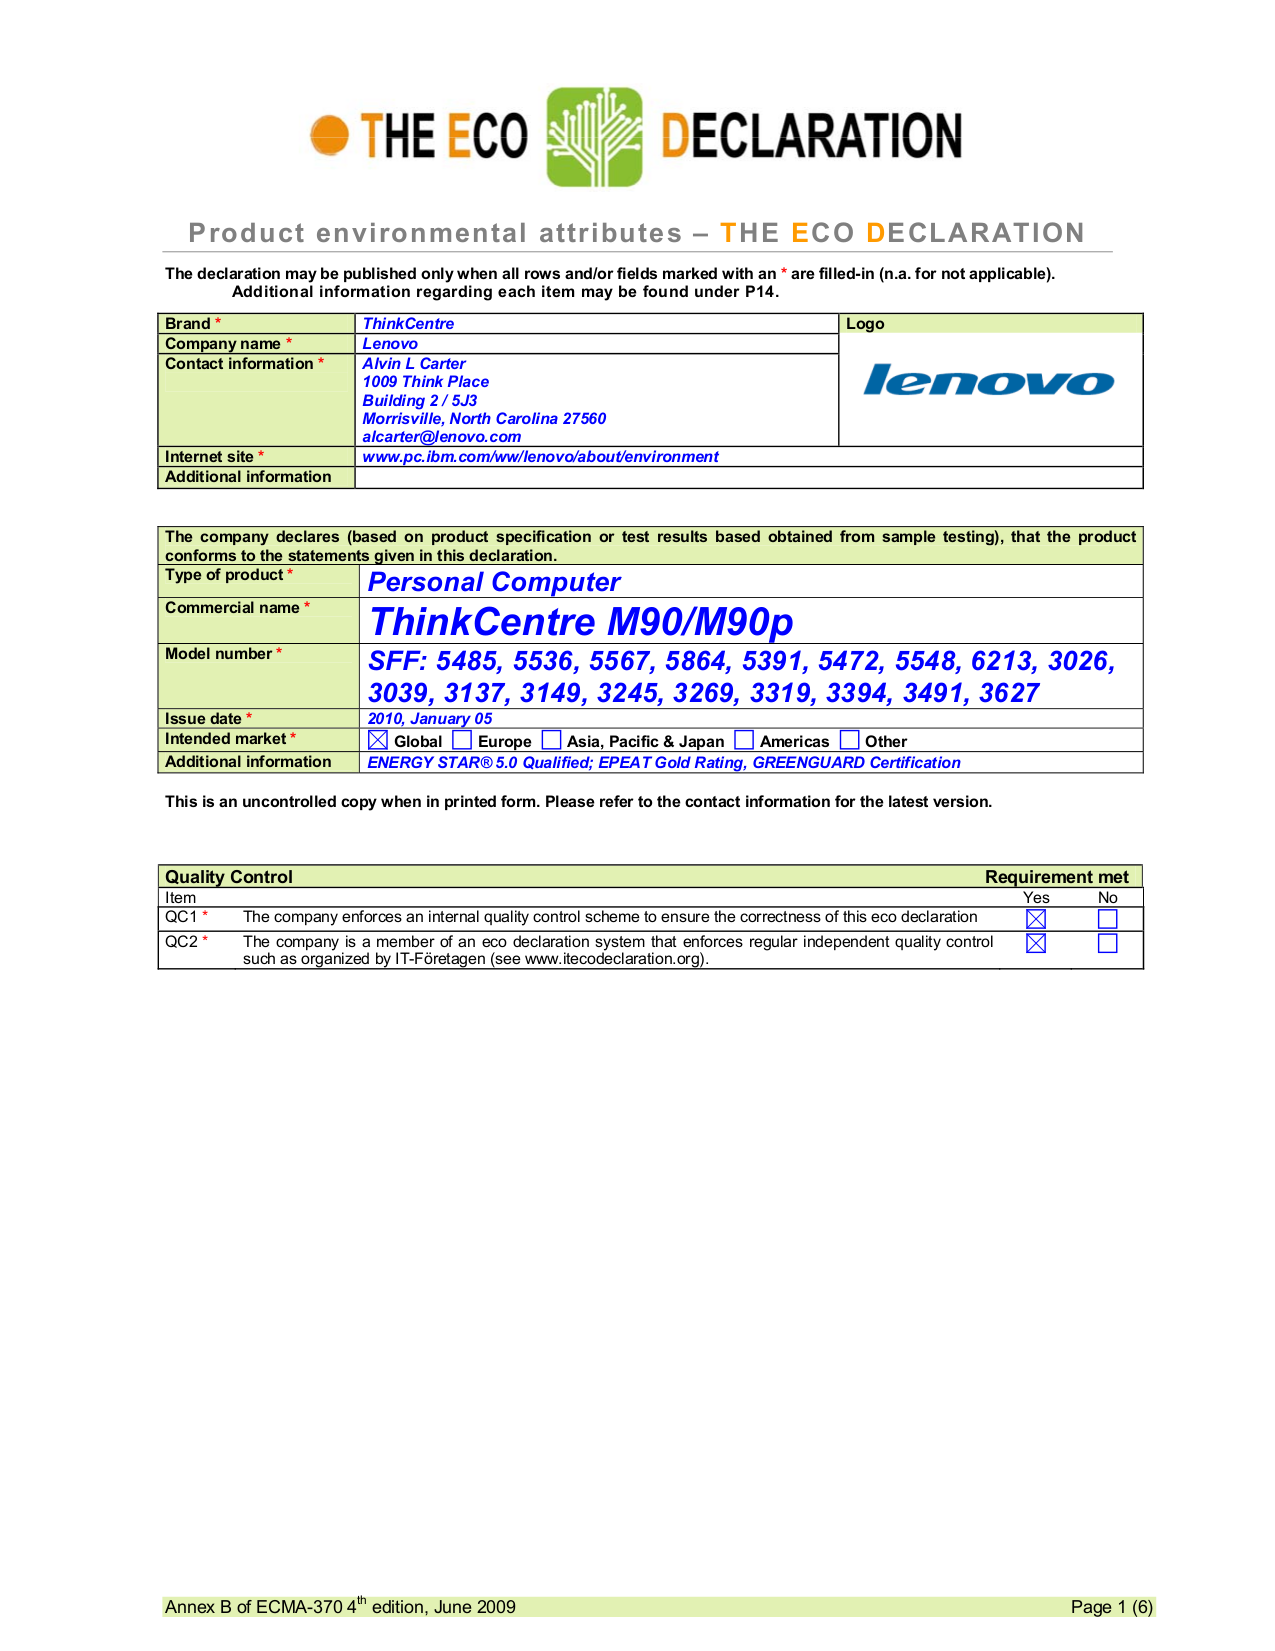 pdf for Lenovo Desktop ThinkCentre M90 3491 manual